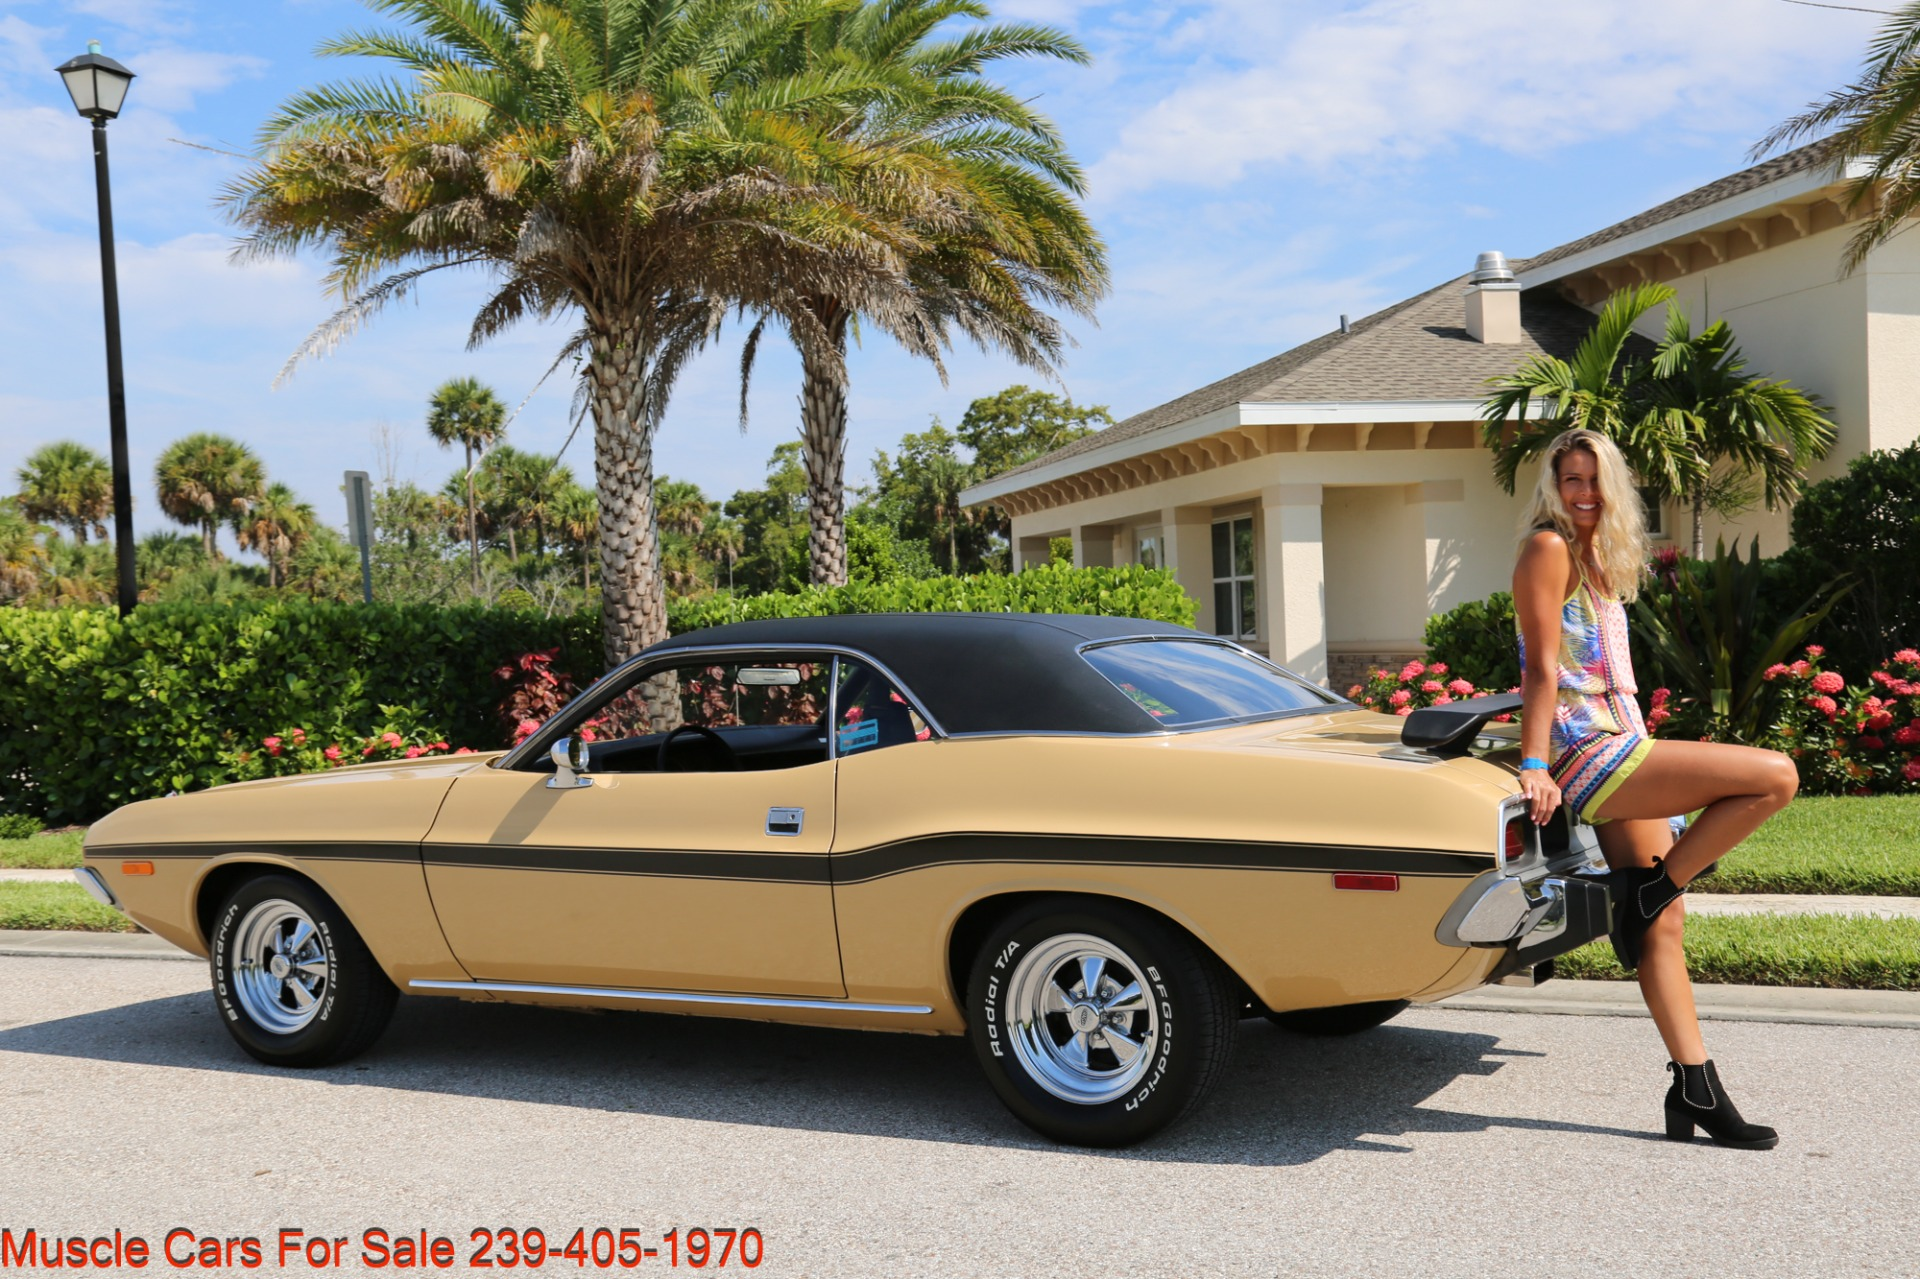 Used 1974 Dodge Challenger V8  Auto for sale $34,000 at Muscle Cars for Sale Inc. in Fort Myers FL 33912 2